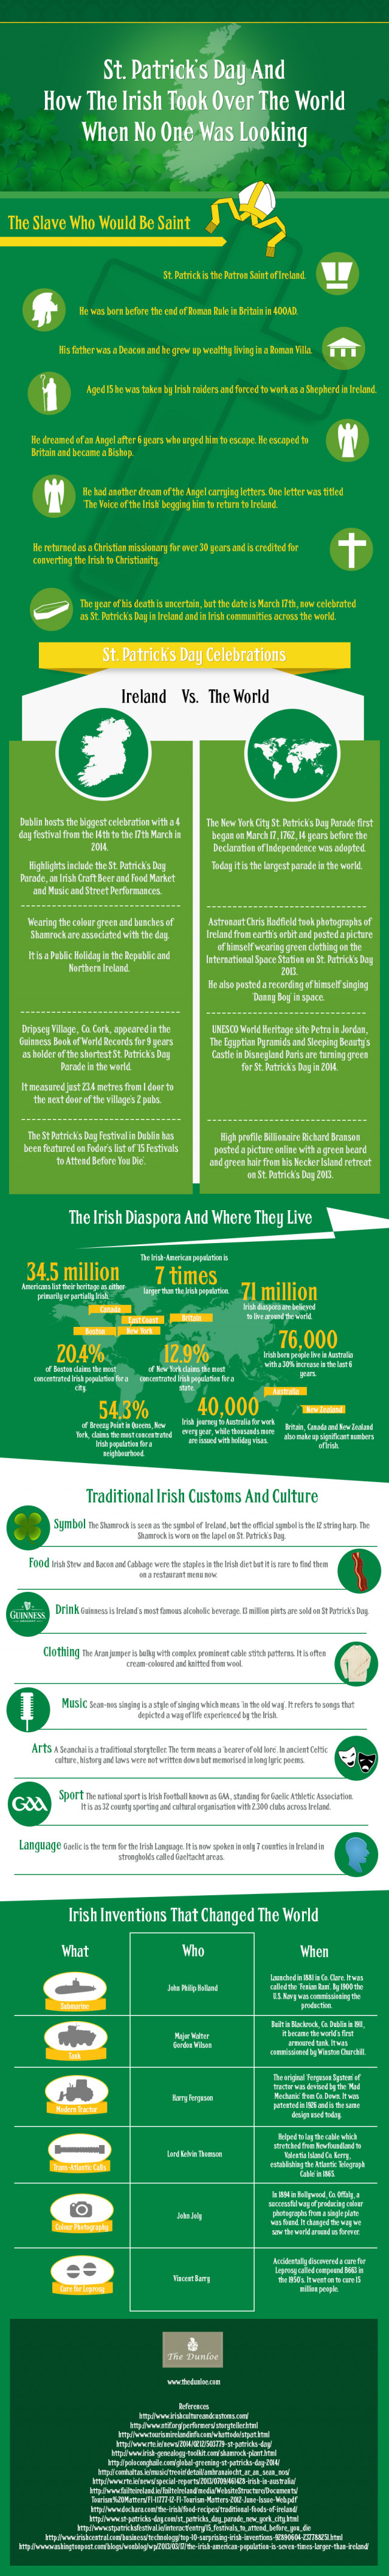 St. Patrick's Day, An Infographic